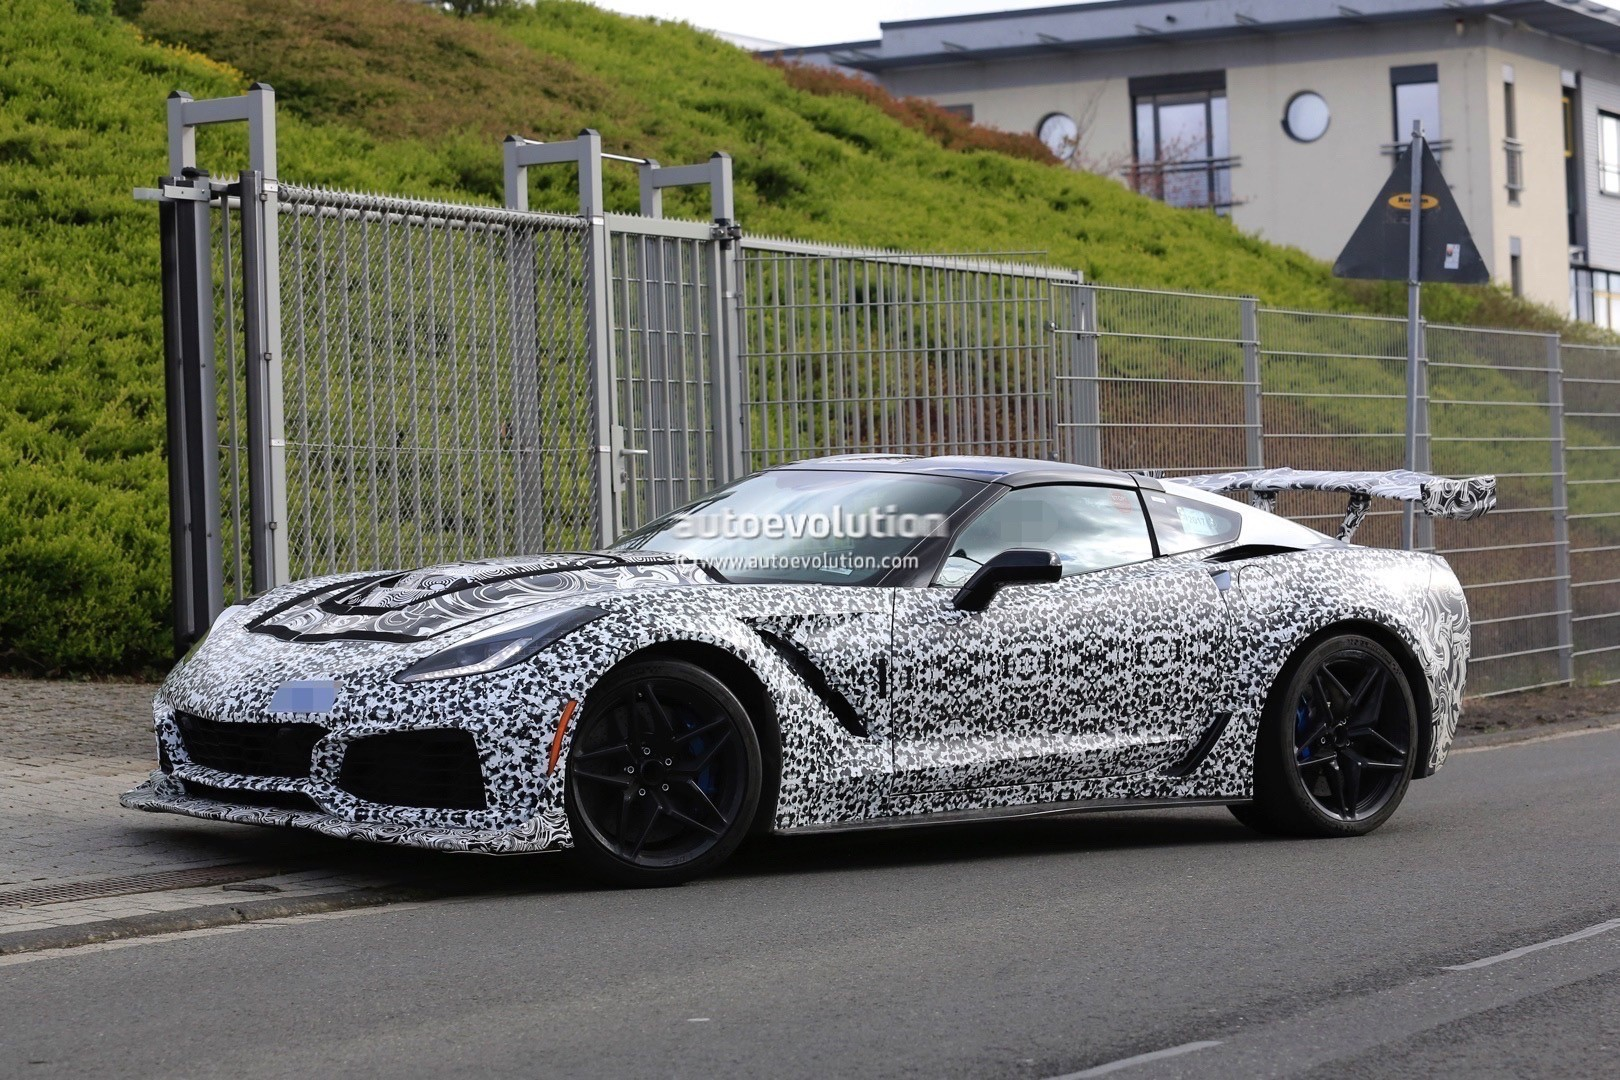 2018 Corvette Zr1 Confirmed With Supercharged Lt5 V8